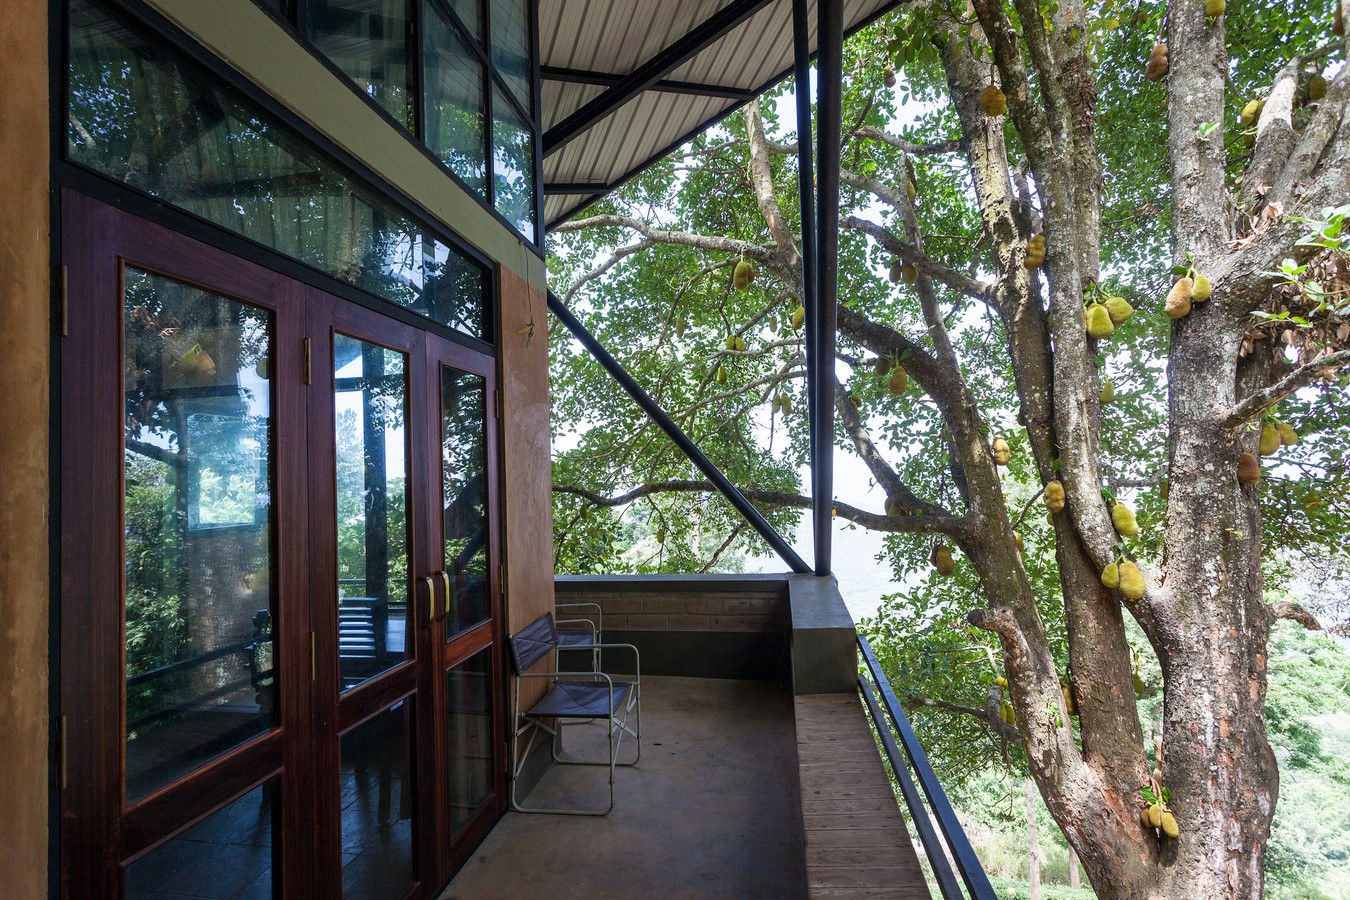 Hornbill House at Oland Estate by Chitra Vishwanath: End of the road property - Sheet3